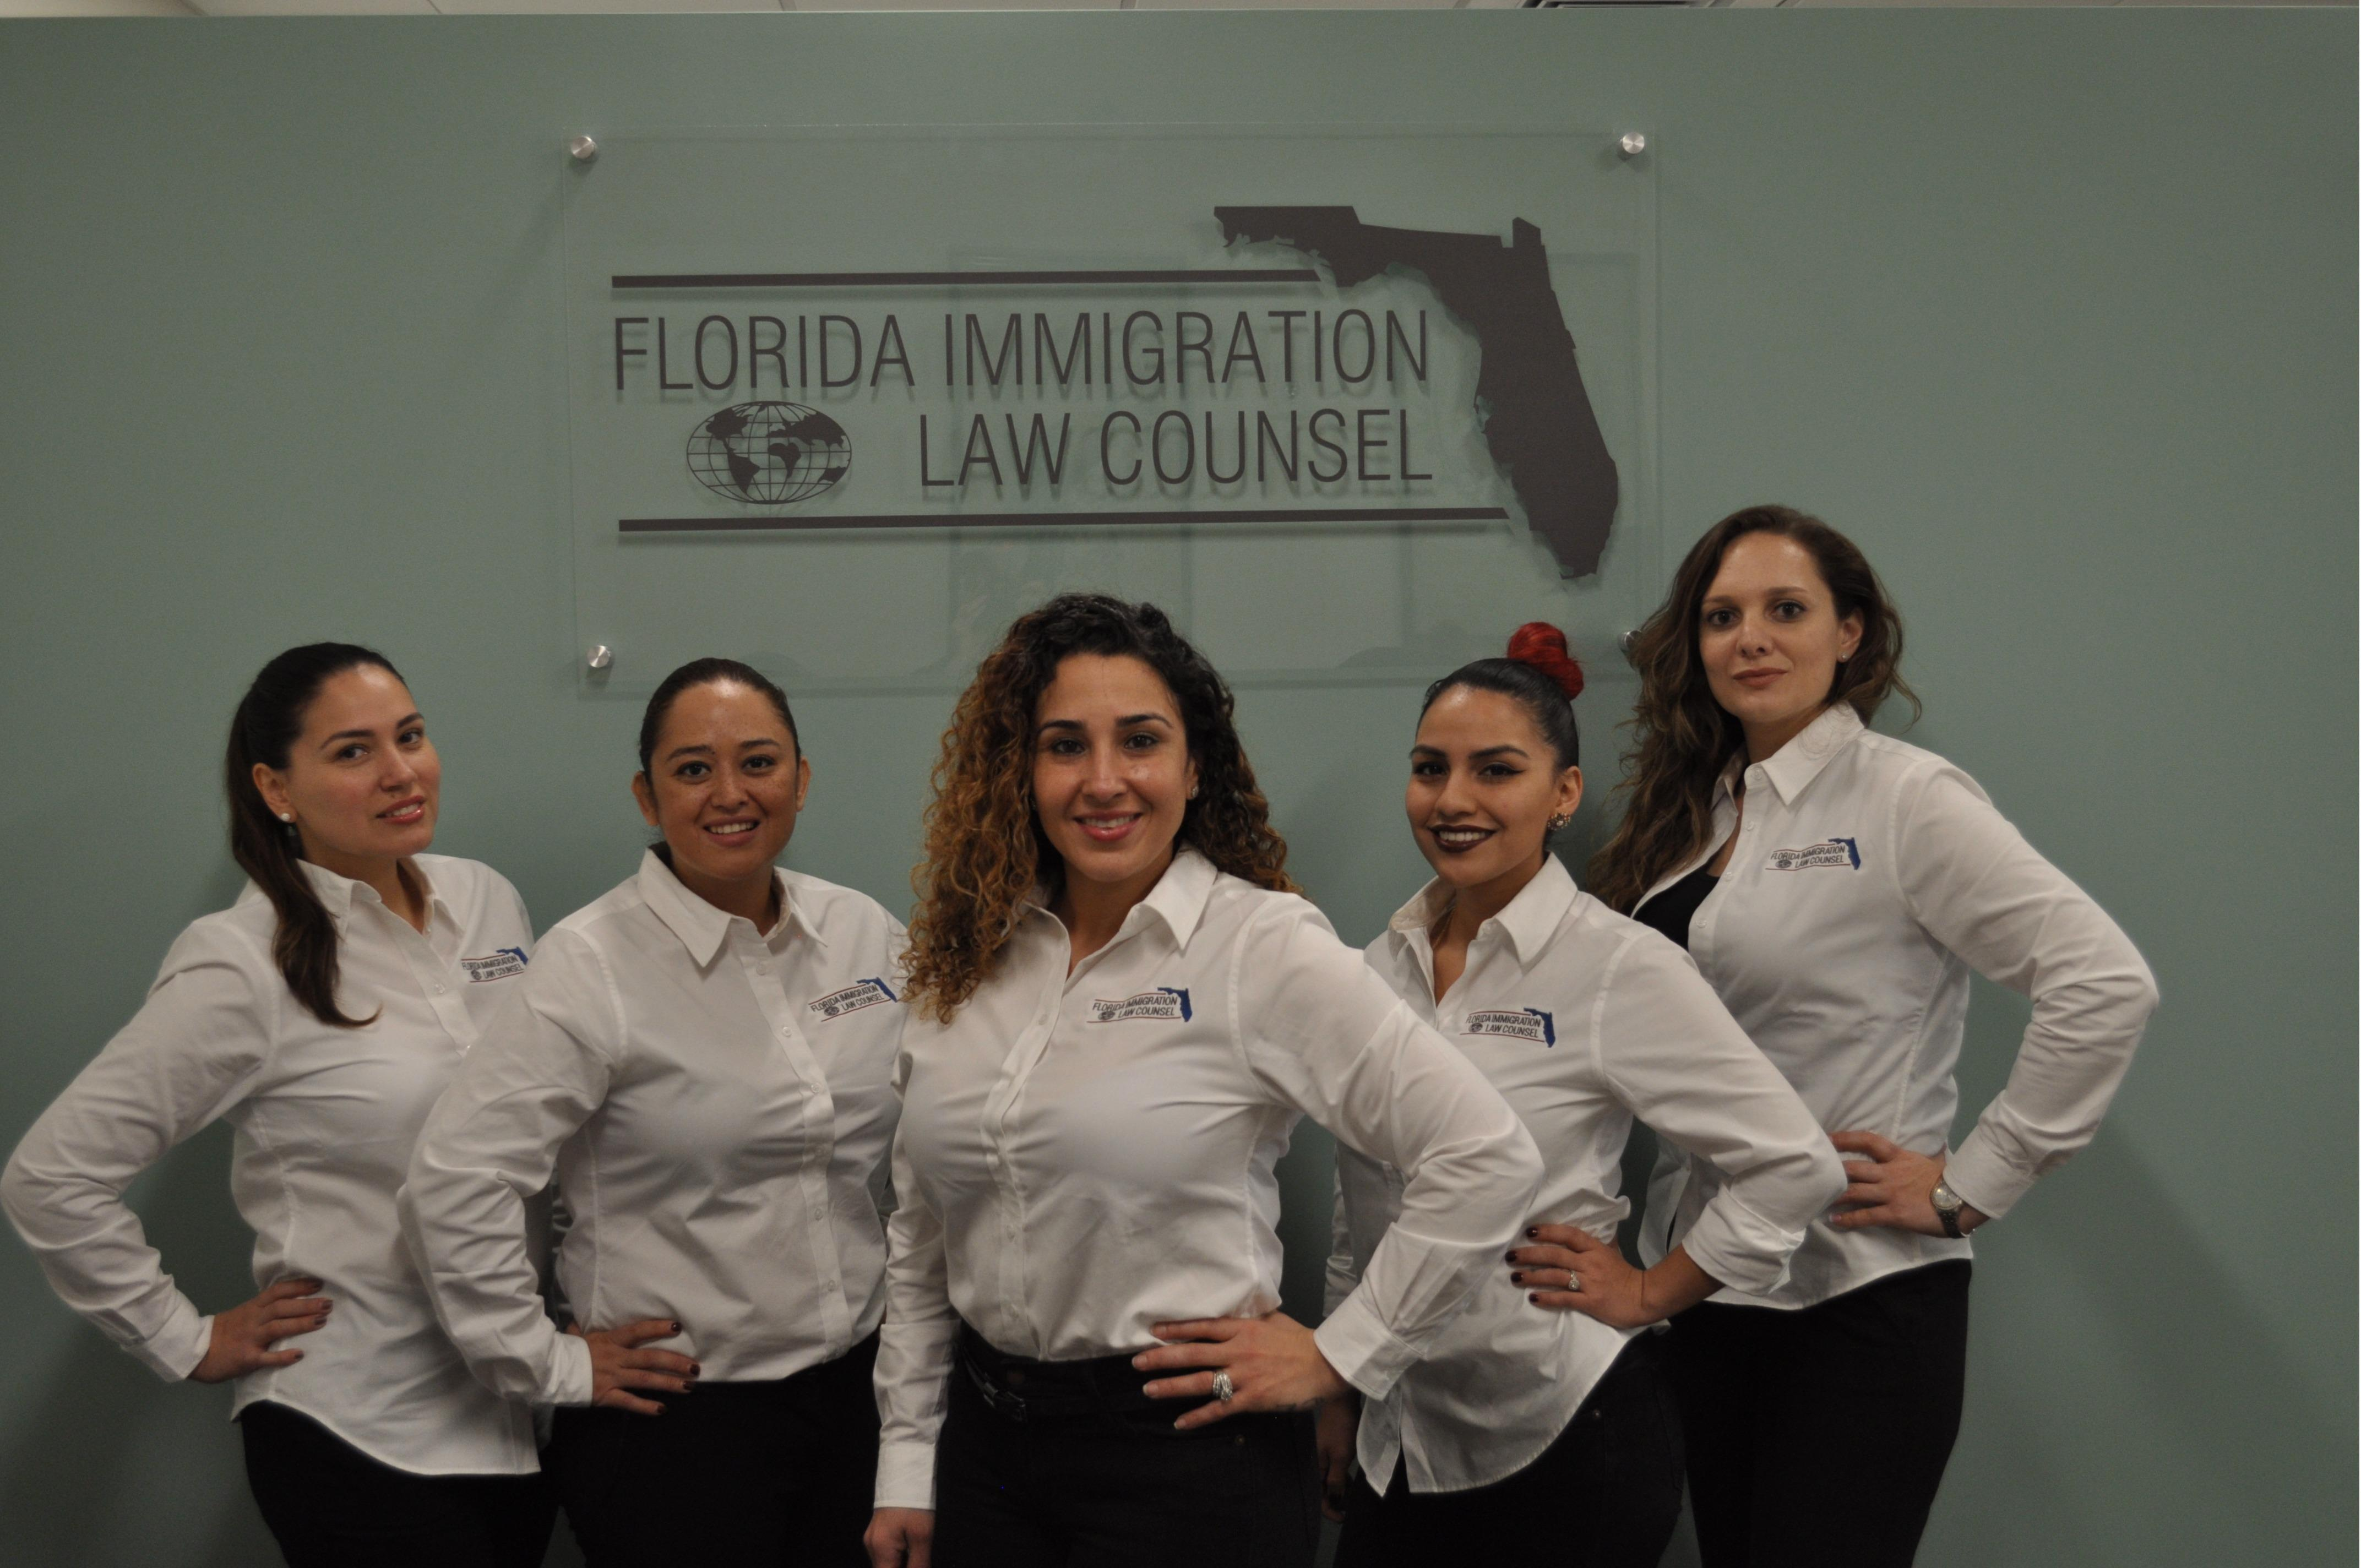 Florida Immigration Law Counsel image 2